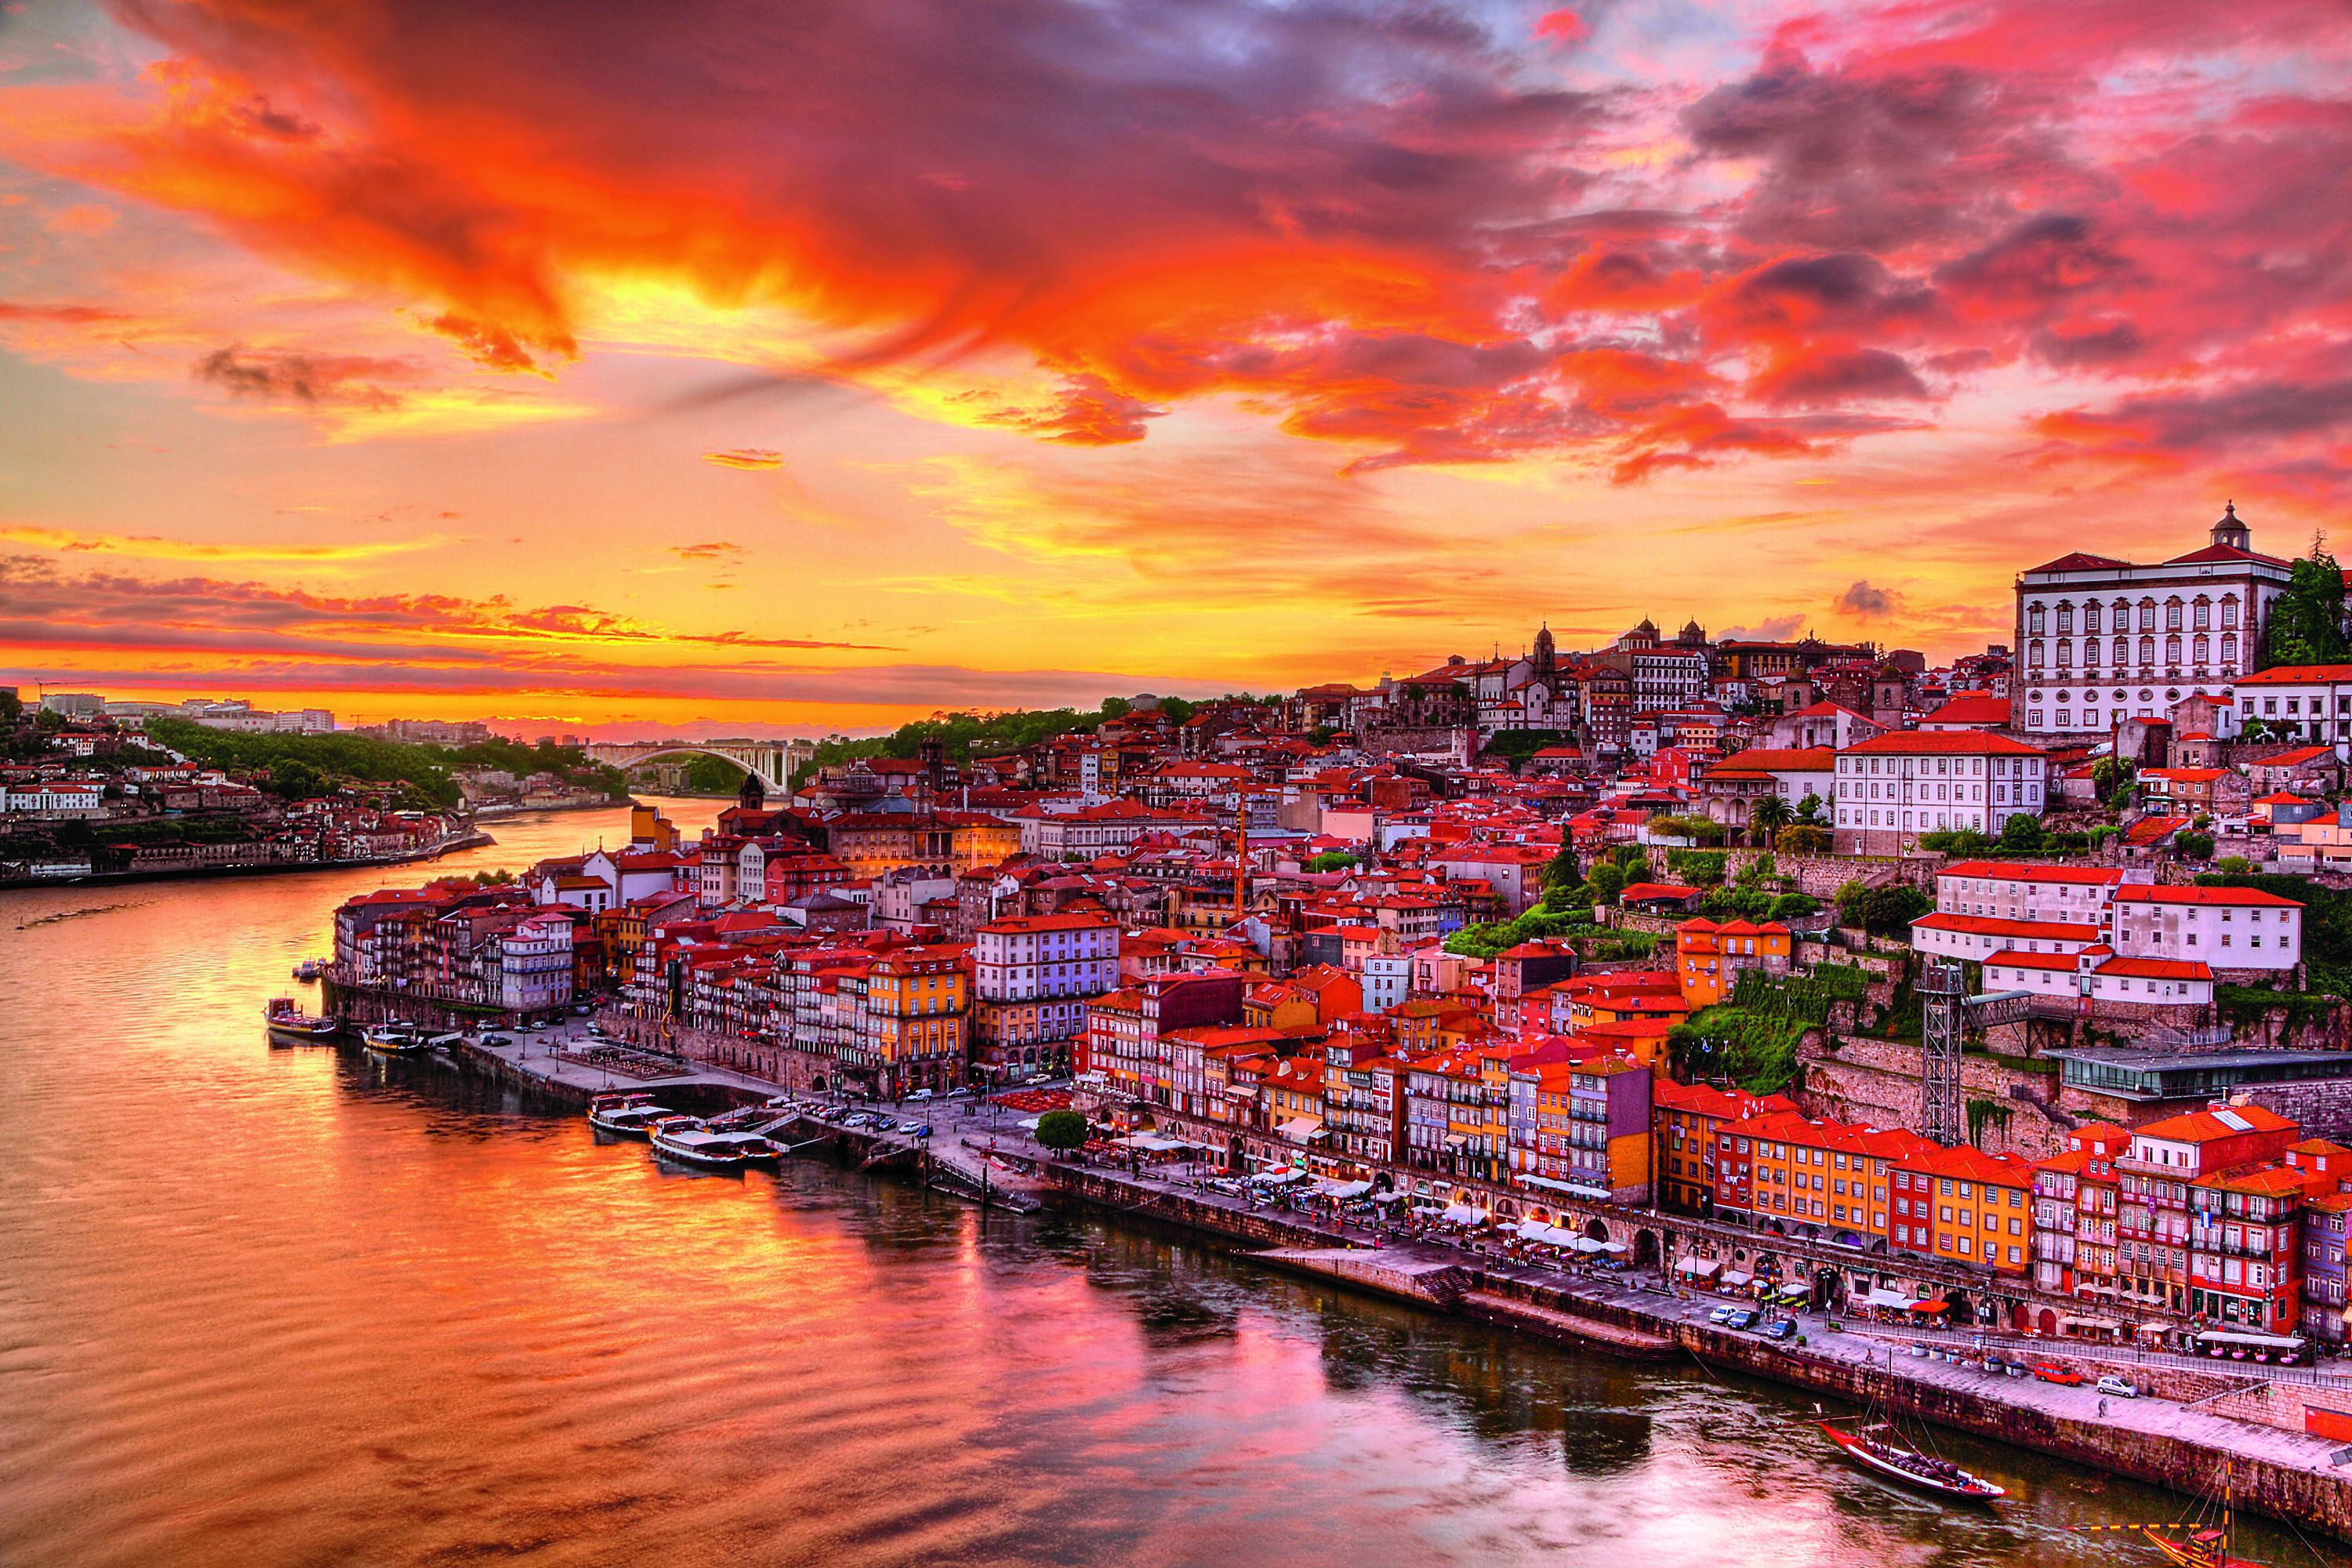 Northern Portugal Why It Should Be On Your Bucket List 23 northern portugal Northern Portugal: Why It Should Be On Your Bucket List Northern Portugal Why It Should Be On Your Bucket List 23